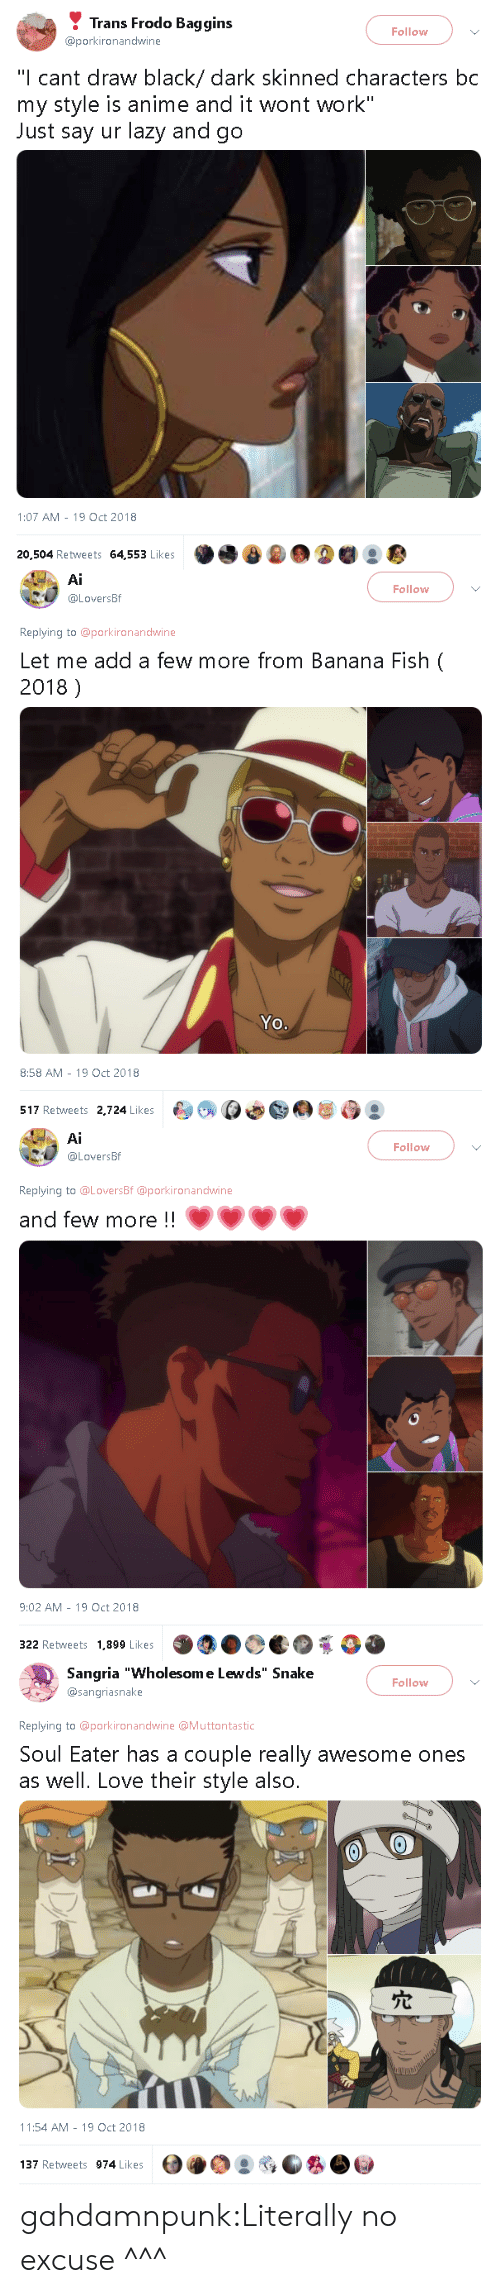 "frodo: Trans Frodo Baggins  @porkironandwine  Follow  ""I cant draw black/ dark skinned characters bc  my style is anime and it wont work""  Just say ur lazy and go  1:07 AM-19 Oct 2018  20,504 Retweets 64,553 Likes   Ai  @LoversBf  Follow  Replying to @porkironandwine  Let me add a few more from Banana Fish (  2018)  Yo.  8:58 AM -19 Oct 2018  517 Retweets 2,724 Likes  臼여 ρΦ@@屡ら   Ai  Follow  .U @LoversBf  Replying to @LoversBf @porkironandwine  and few more !!  9:02 AM-19 Oct 2018  322 Retweets 1,899 Likes   Sangria ""Wholesom e Lewds"" Snake  @sangriasnake  Follow  Replying to @porkironandwine @Muttontastic  Soul Eater has a couple really awesome ones  as well. Love their style also.  穴  hi  11:54 AM-19 Oct 2018  137 Retweets 974 Likes gahdamnpunk:Literally no excuse ^^^"